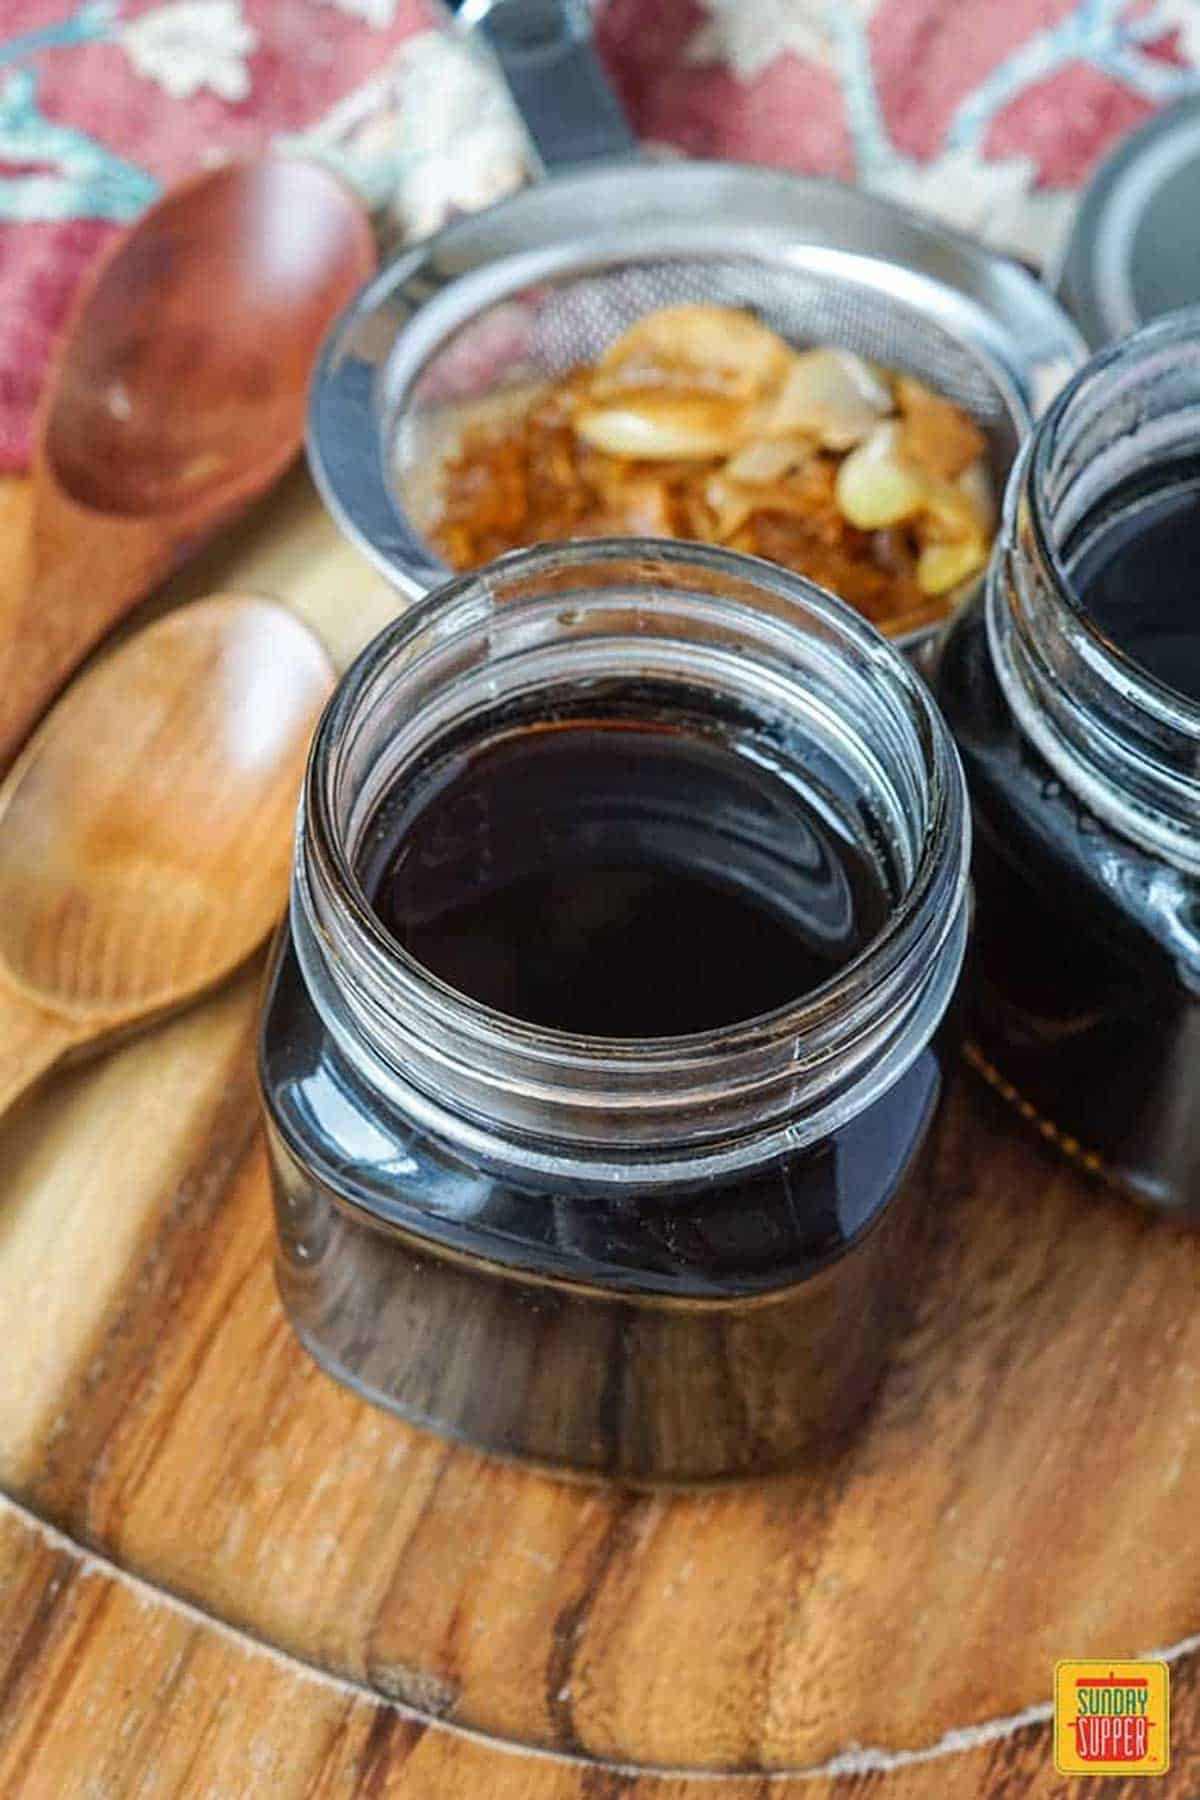 Homemade teriyaki sauce with strained onion, ginger, and garlic in two glass jars